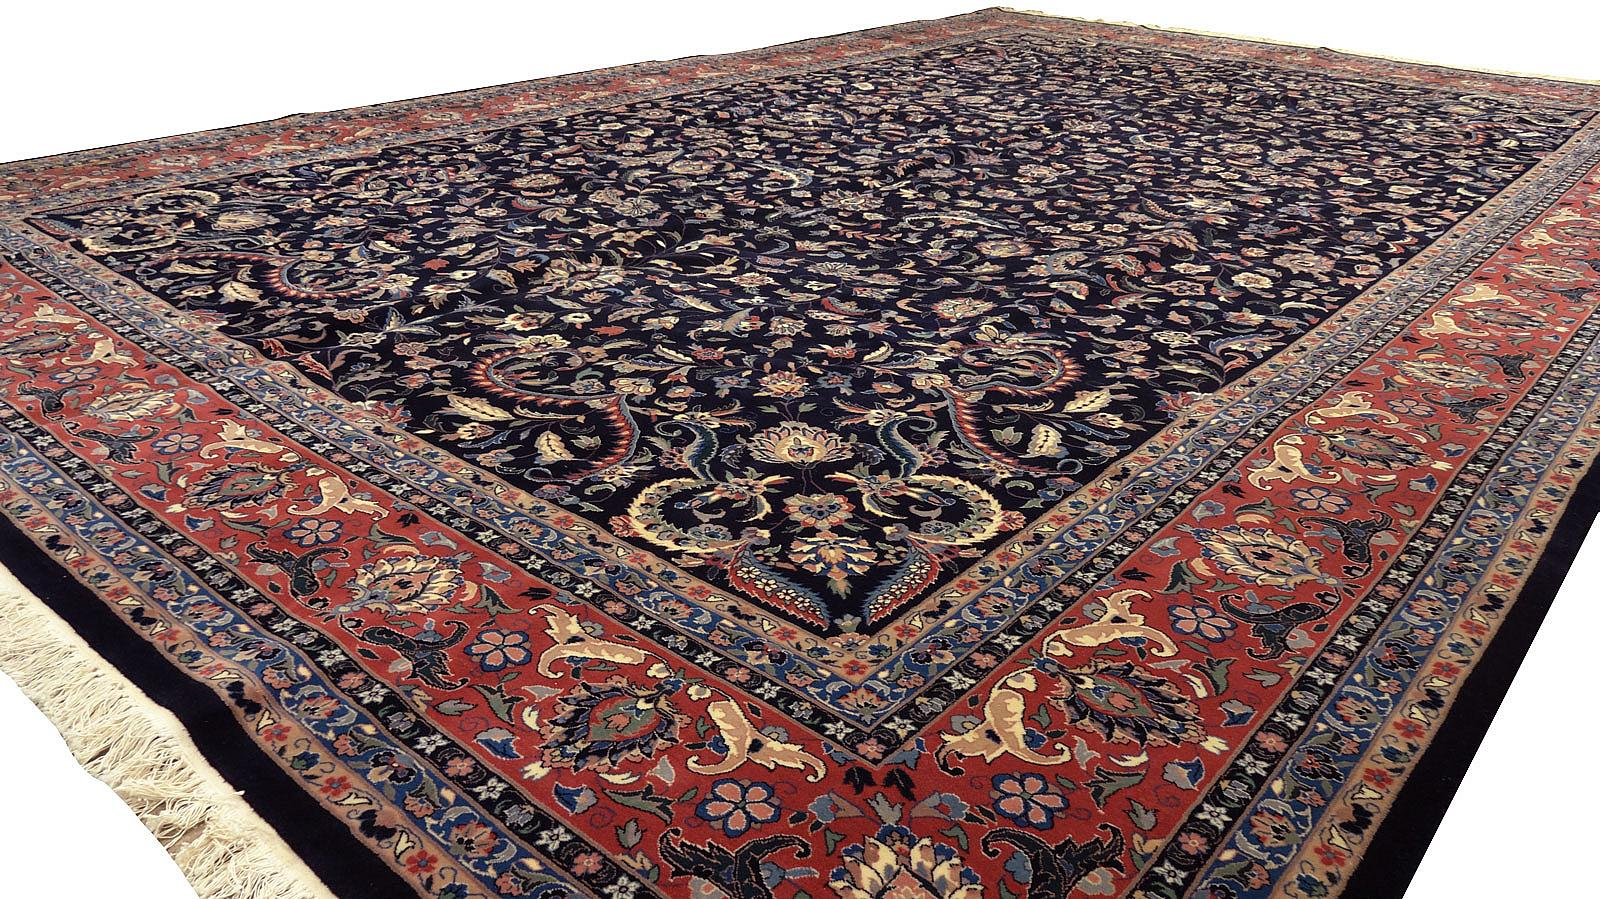 Shalom Brothers Oversized Rugs Collection